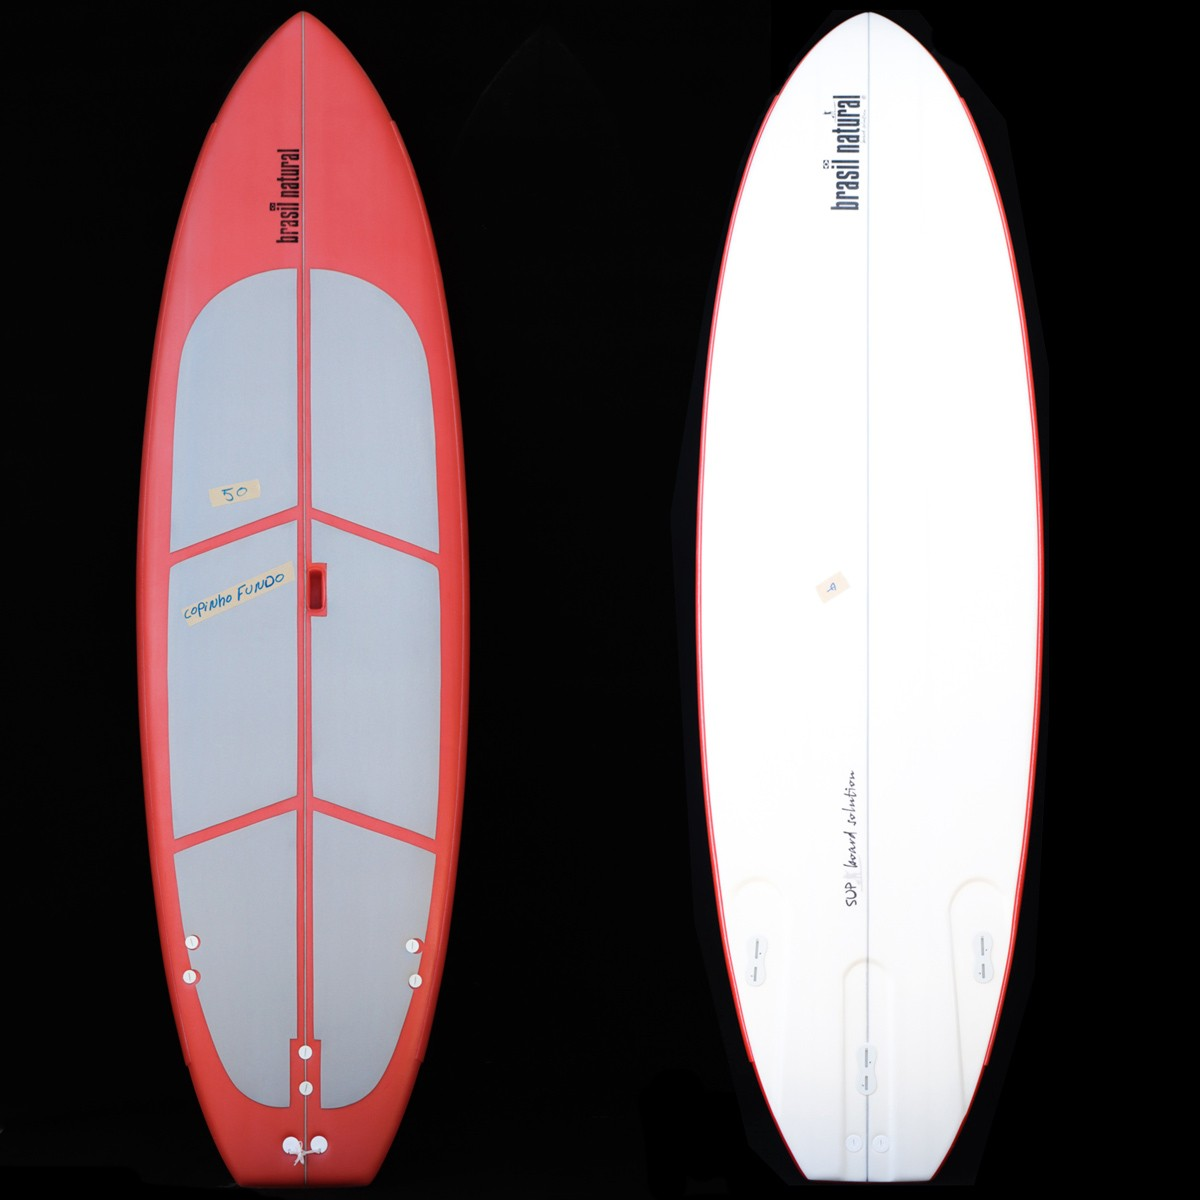 Prancha de stand up paddle 10 pés soft + kit remada - Outlet 50